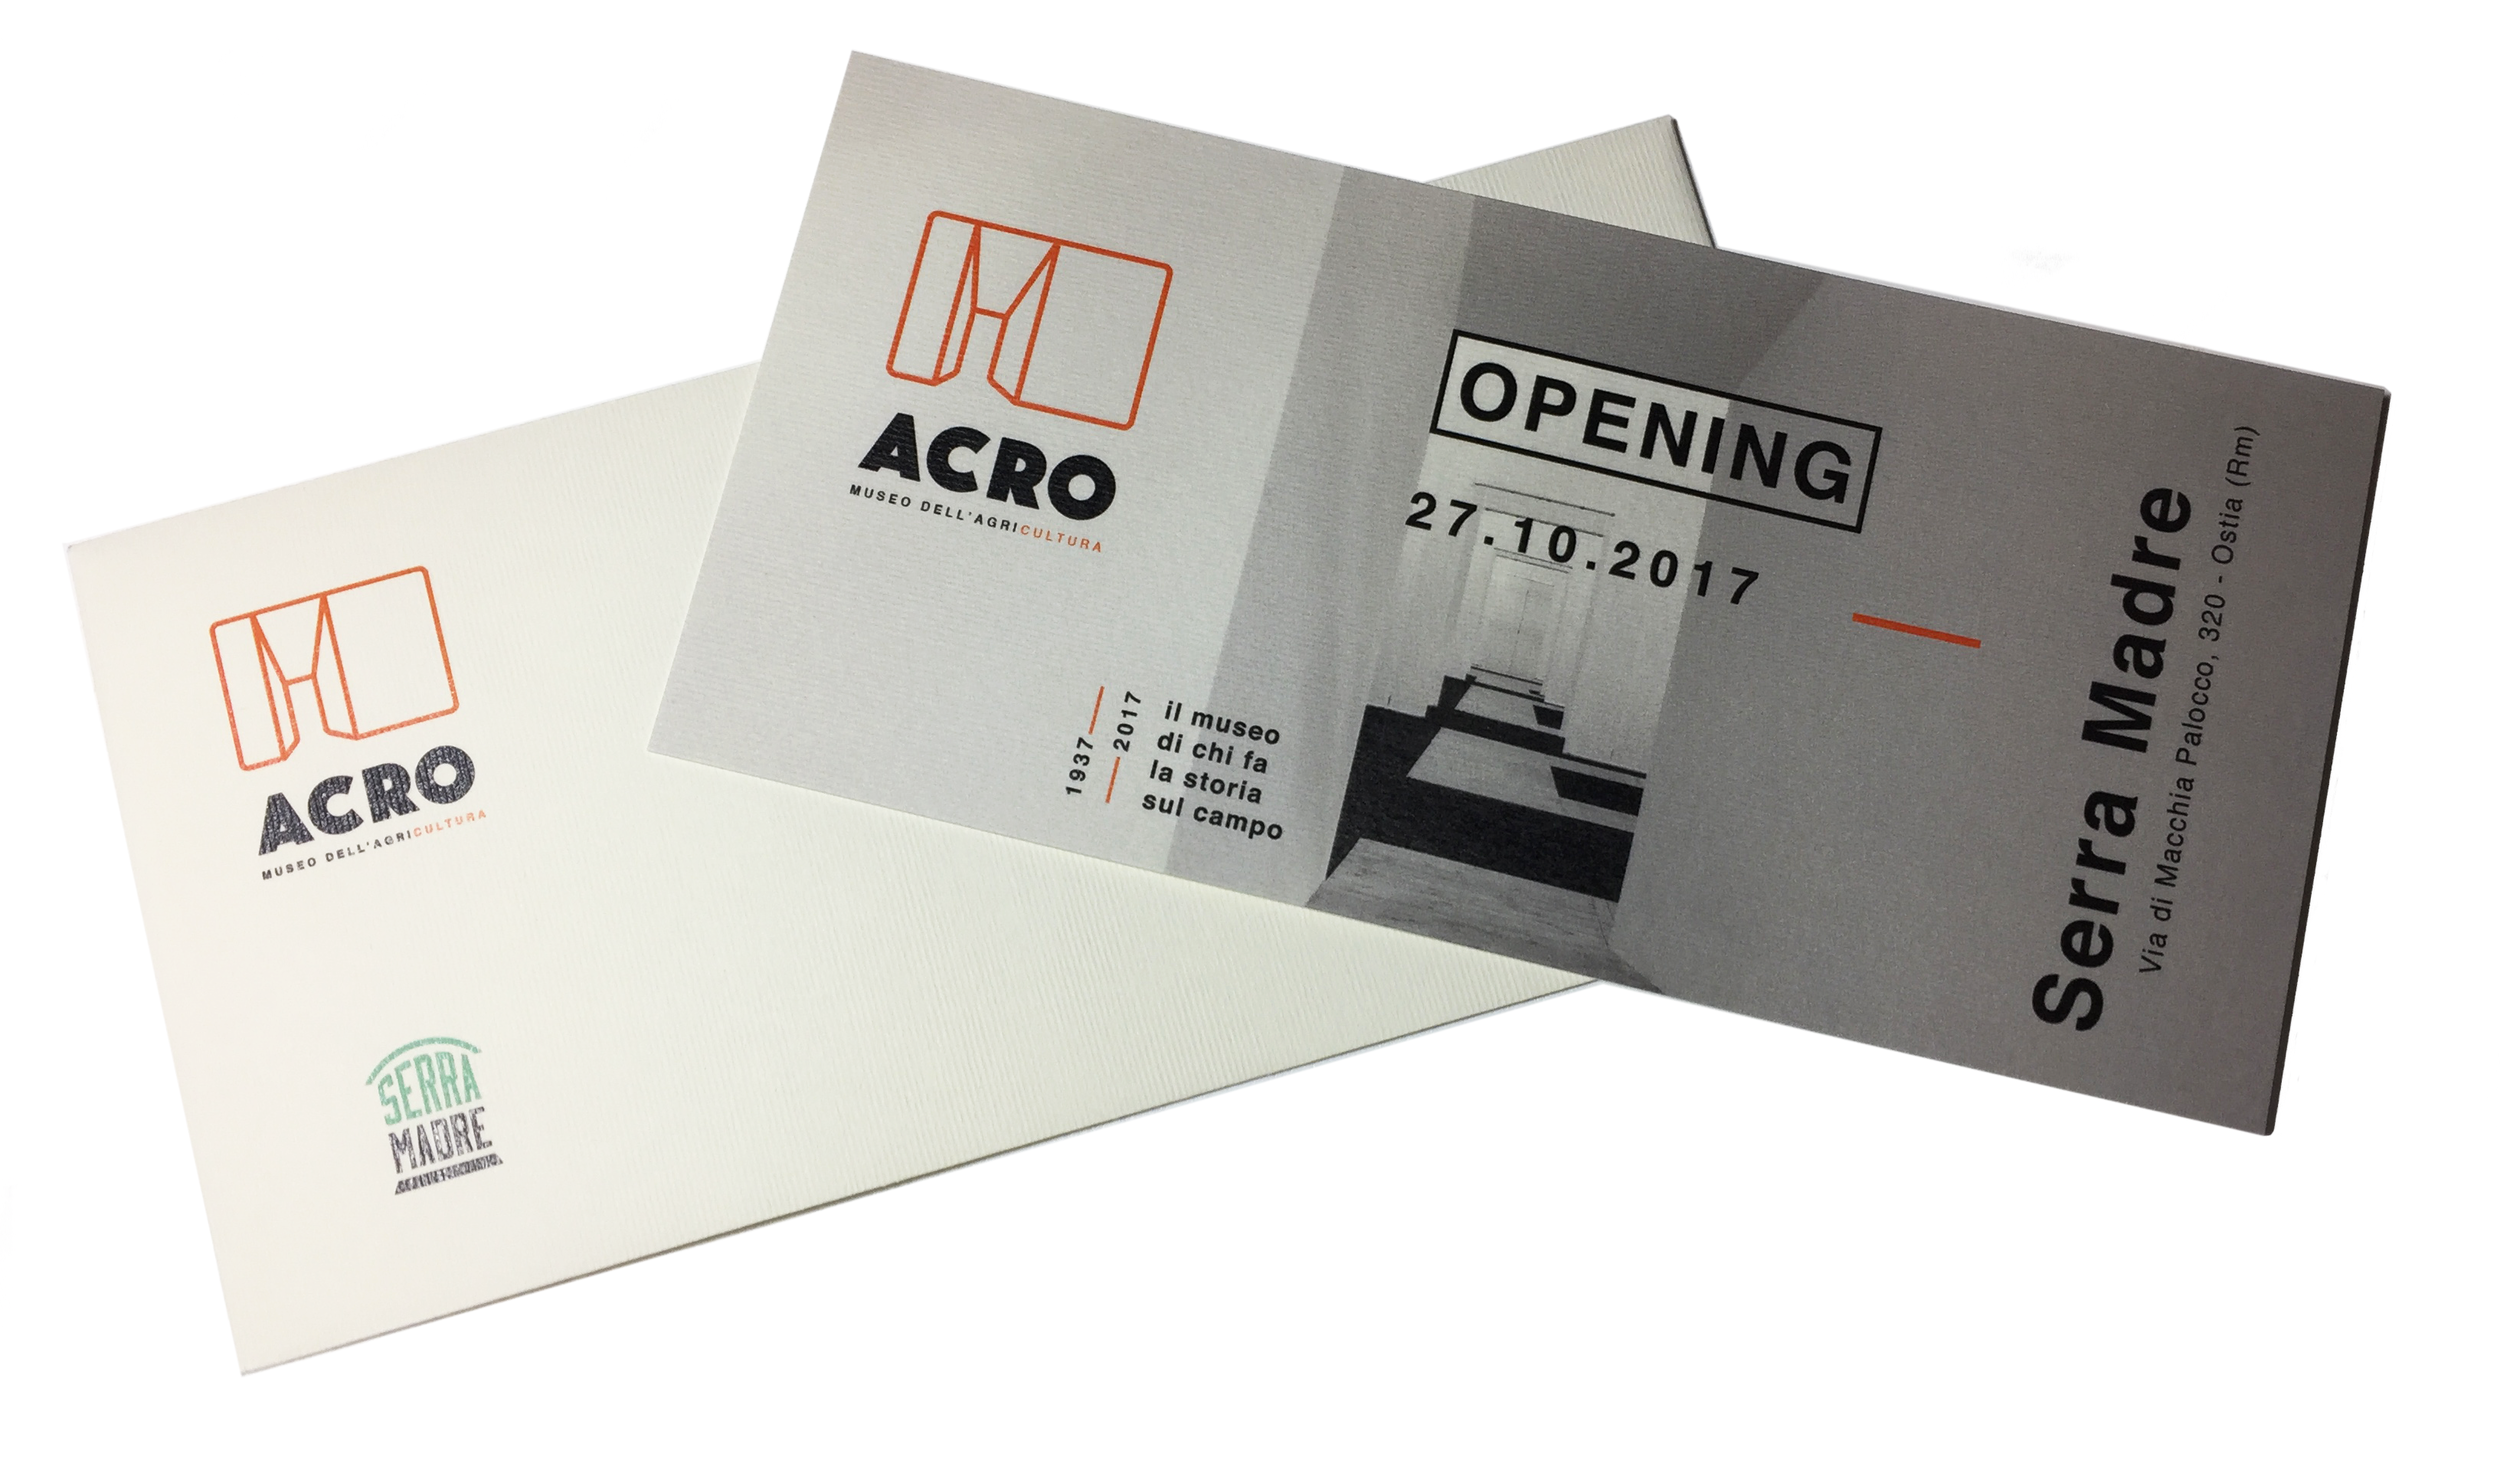 Vip invitation - special invitation,printed on rough recycled paper, in compliance with the Serra Madre company philosophy